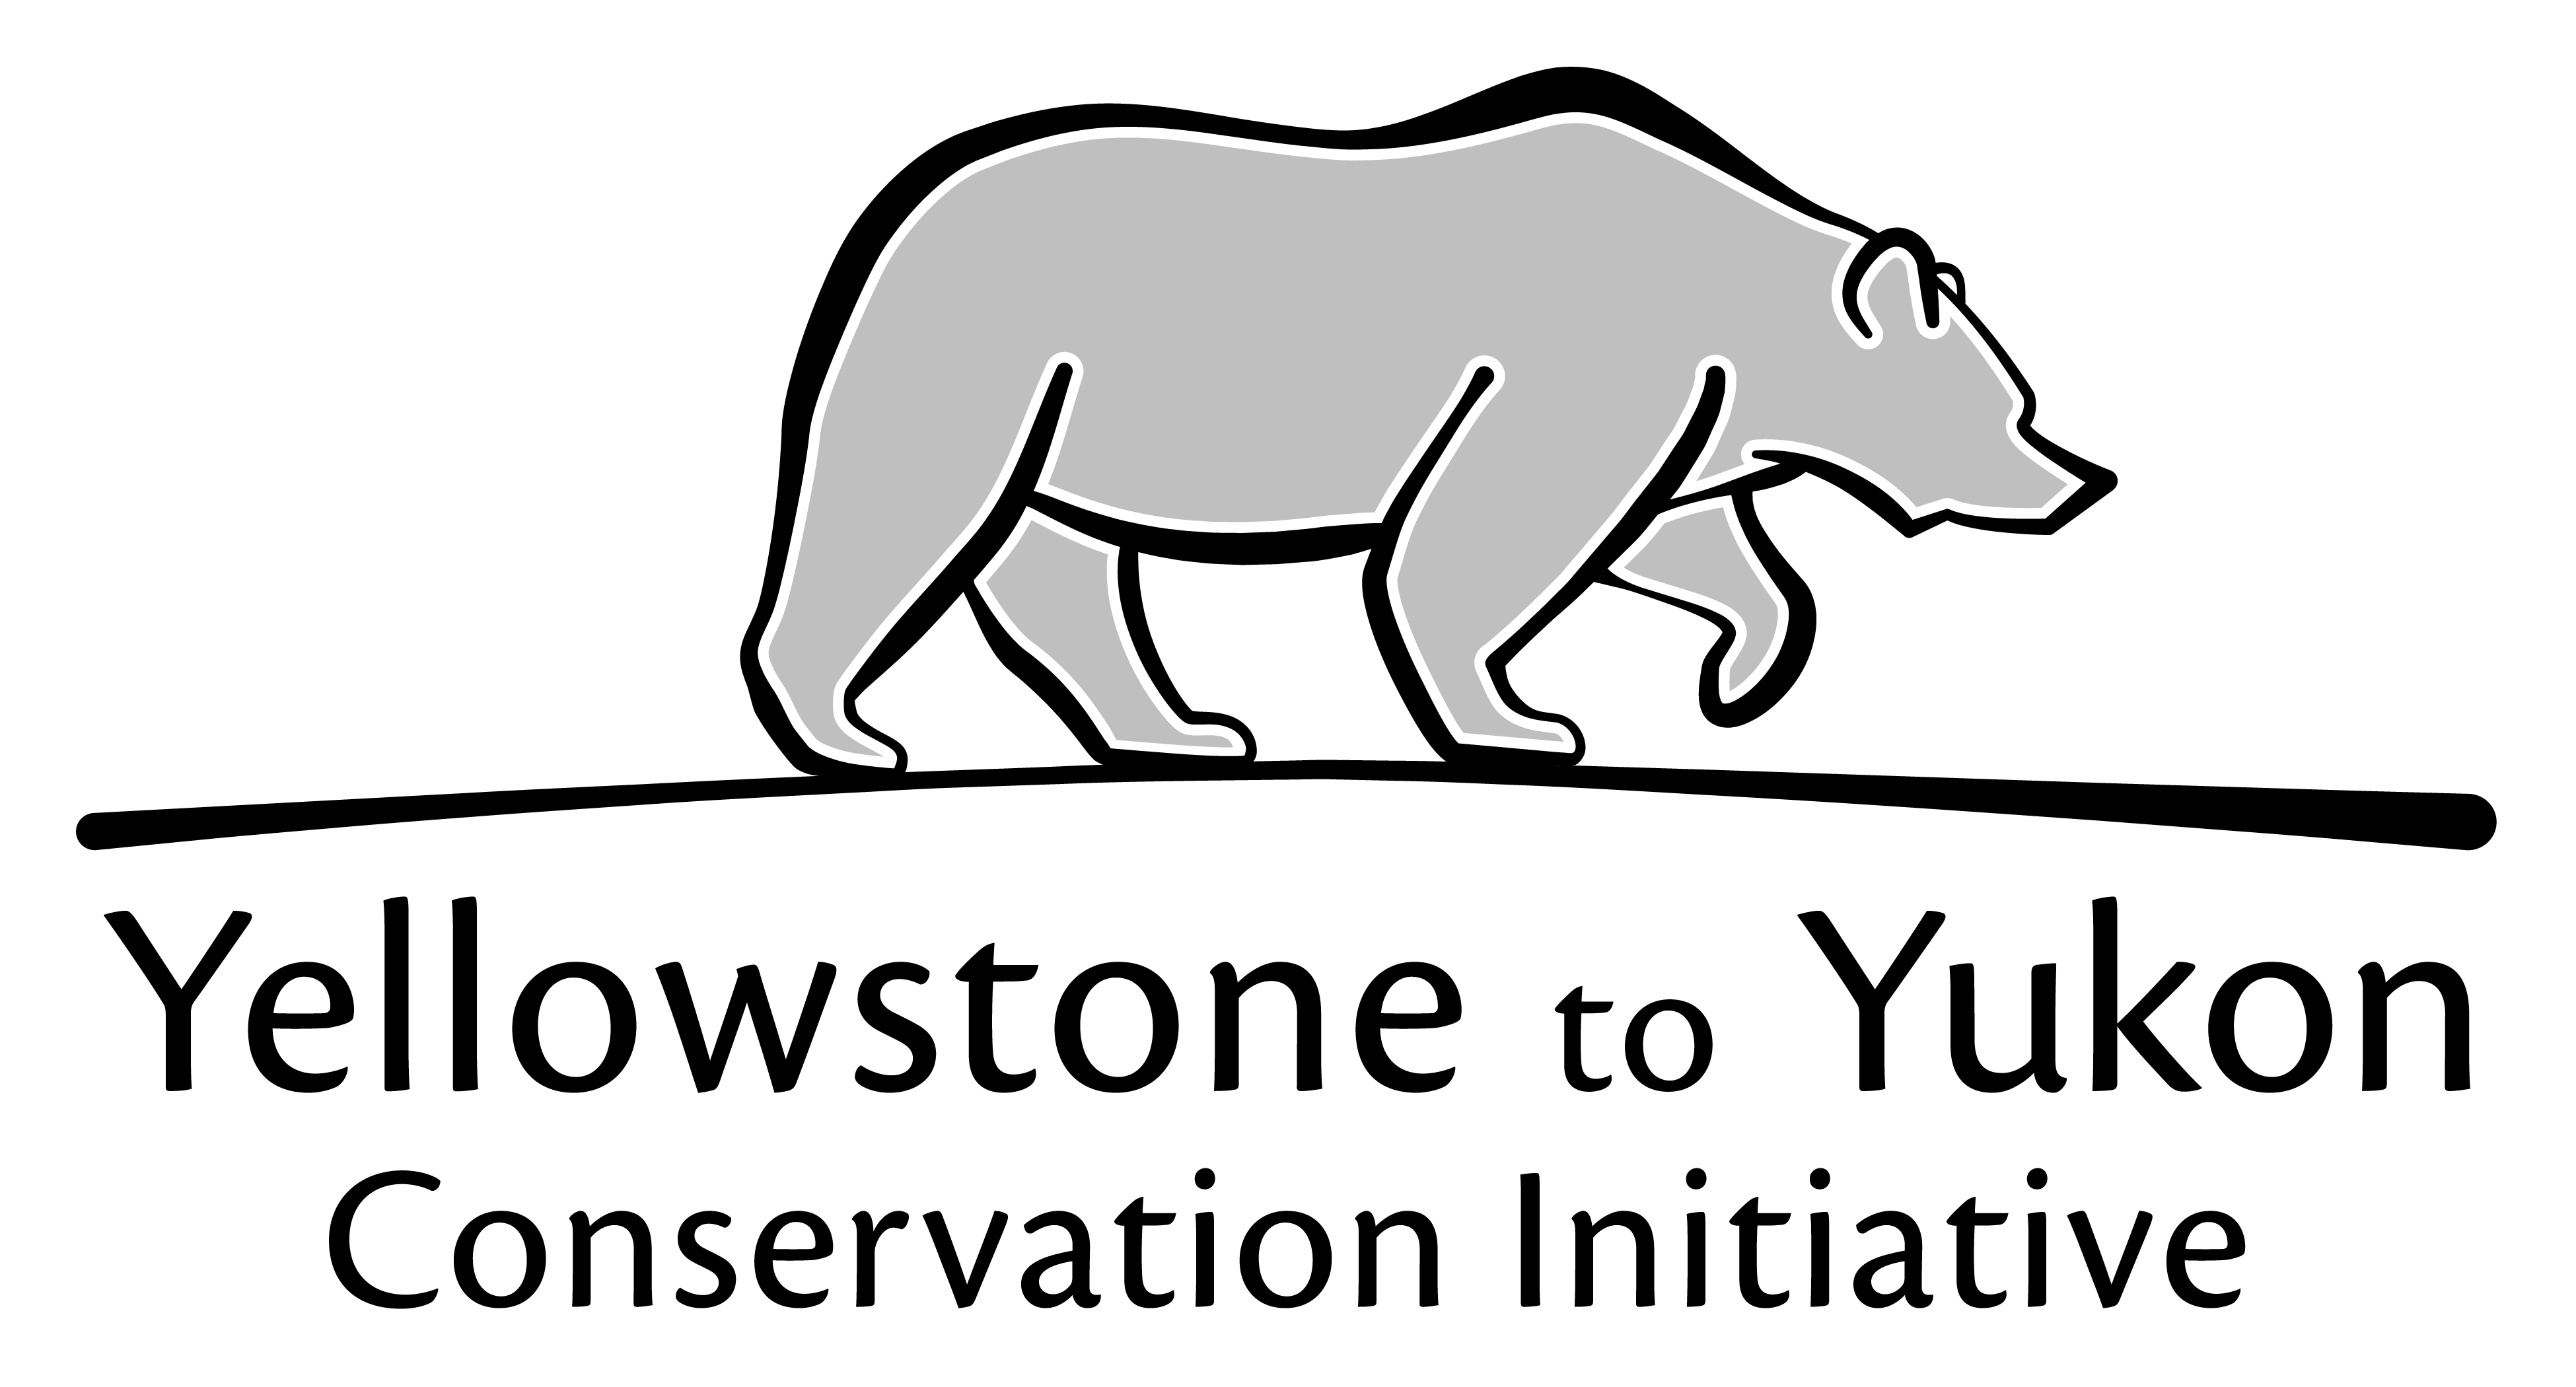 Yellowstone to Yukon logo